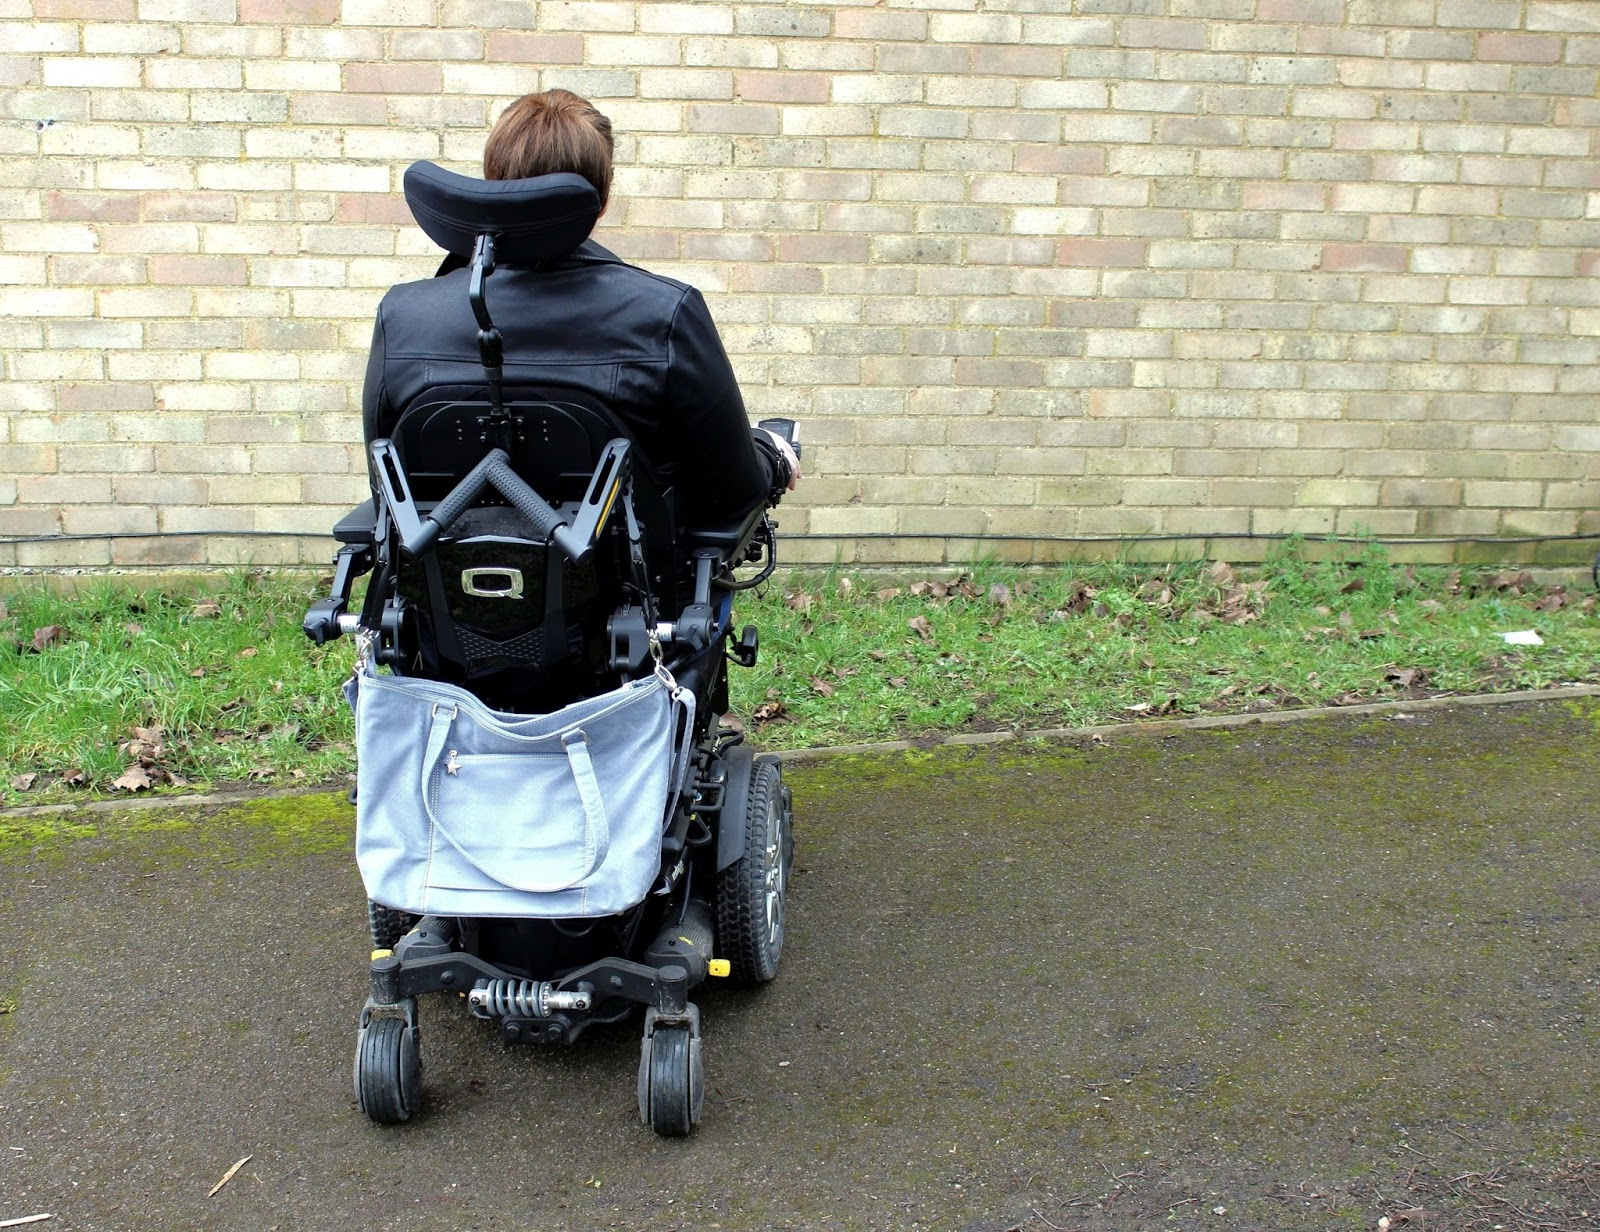 Shona is sitting in her powerchair, the image has been taken from behind, there is a large grey handbag on the back of her powerchair. Background is a brick wall.